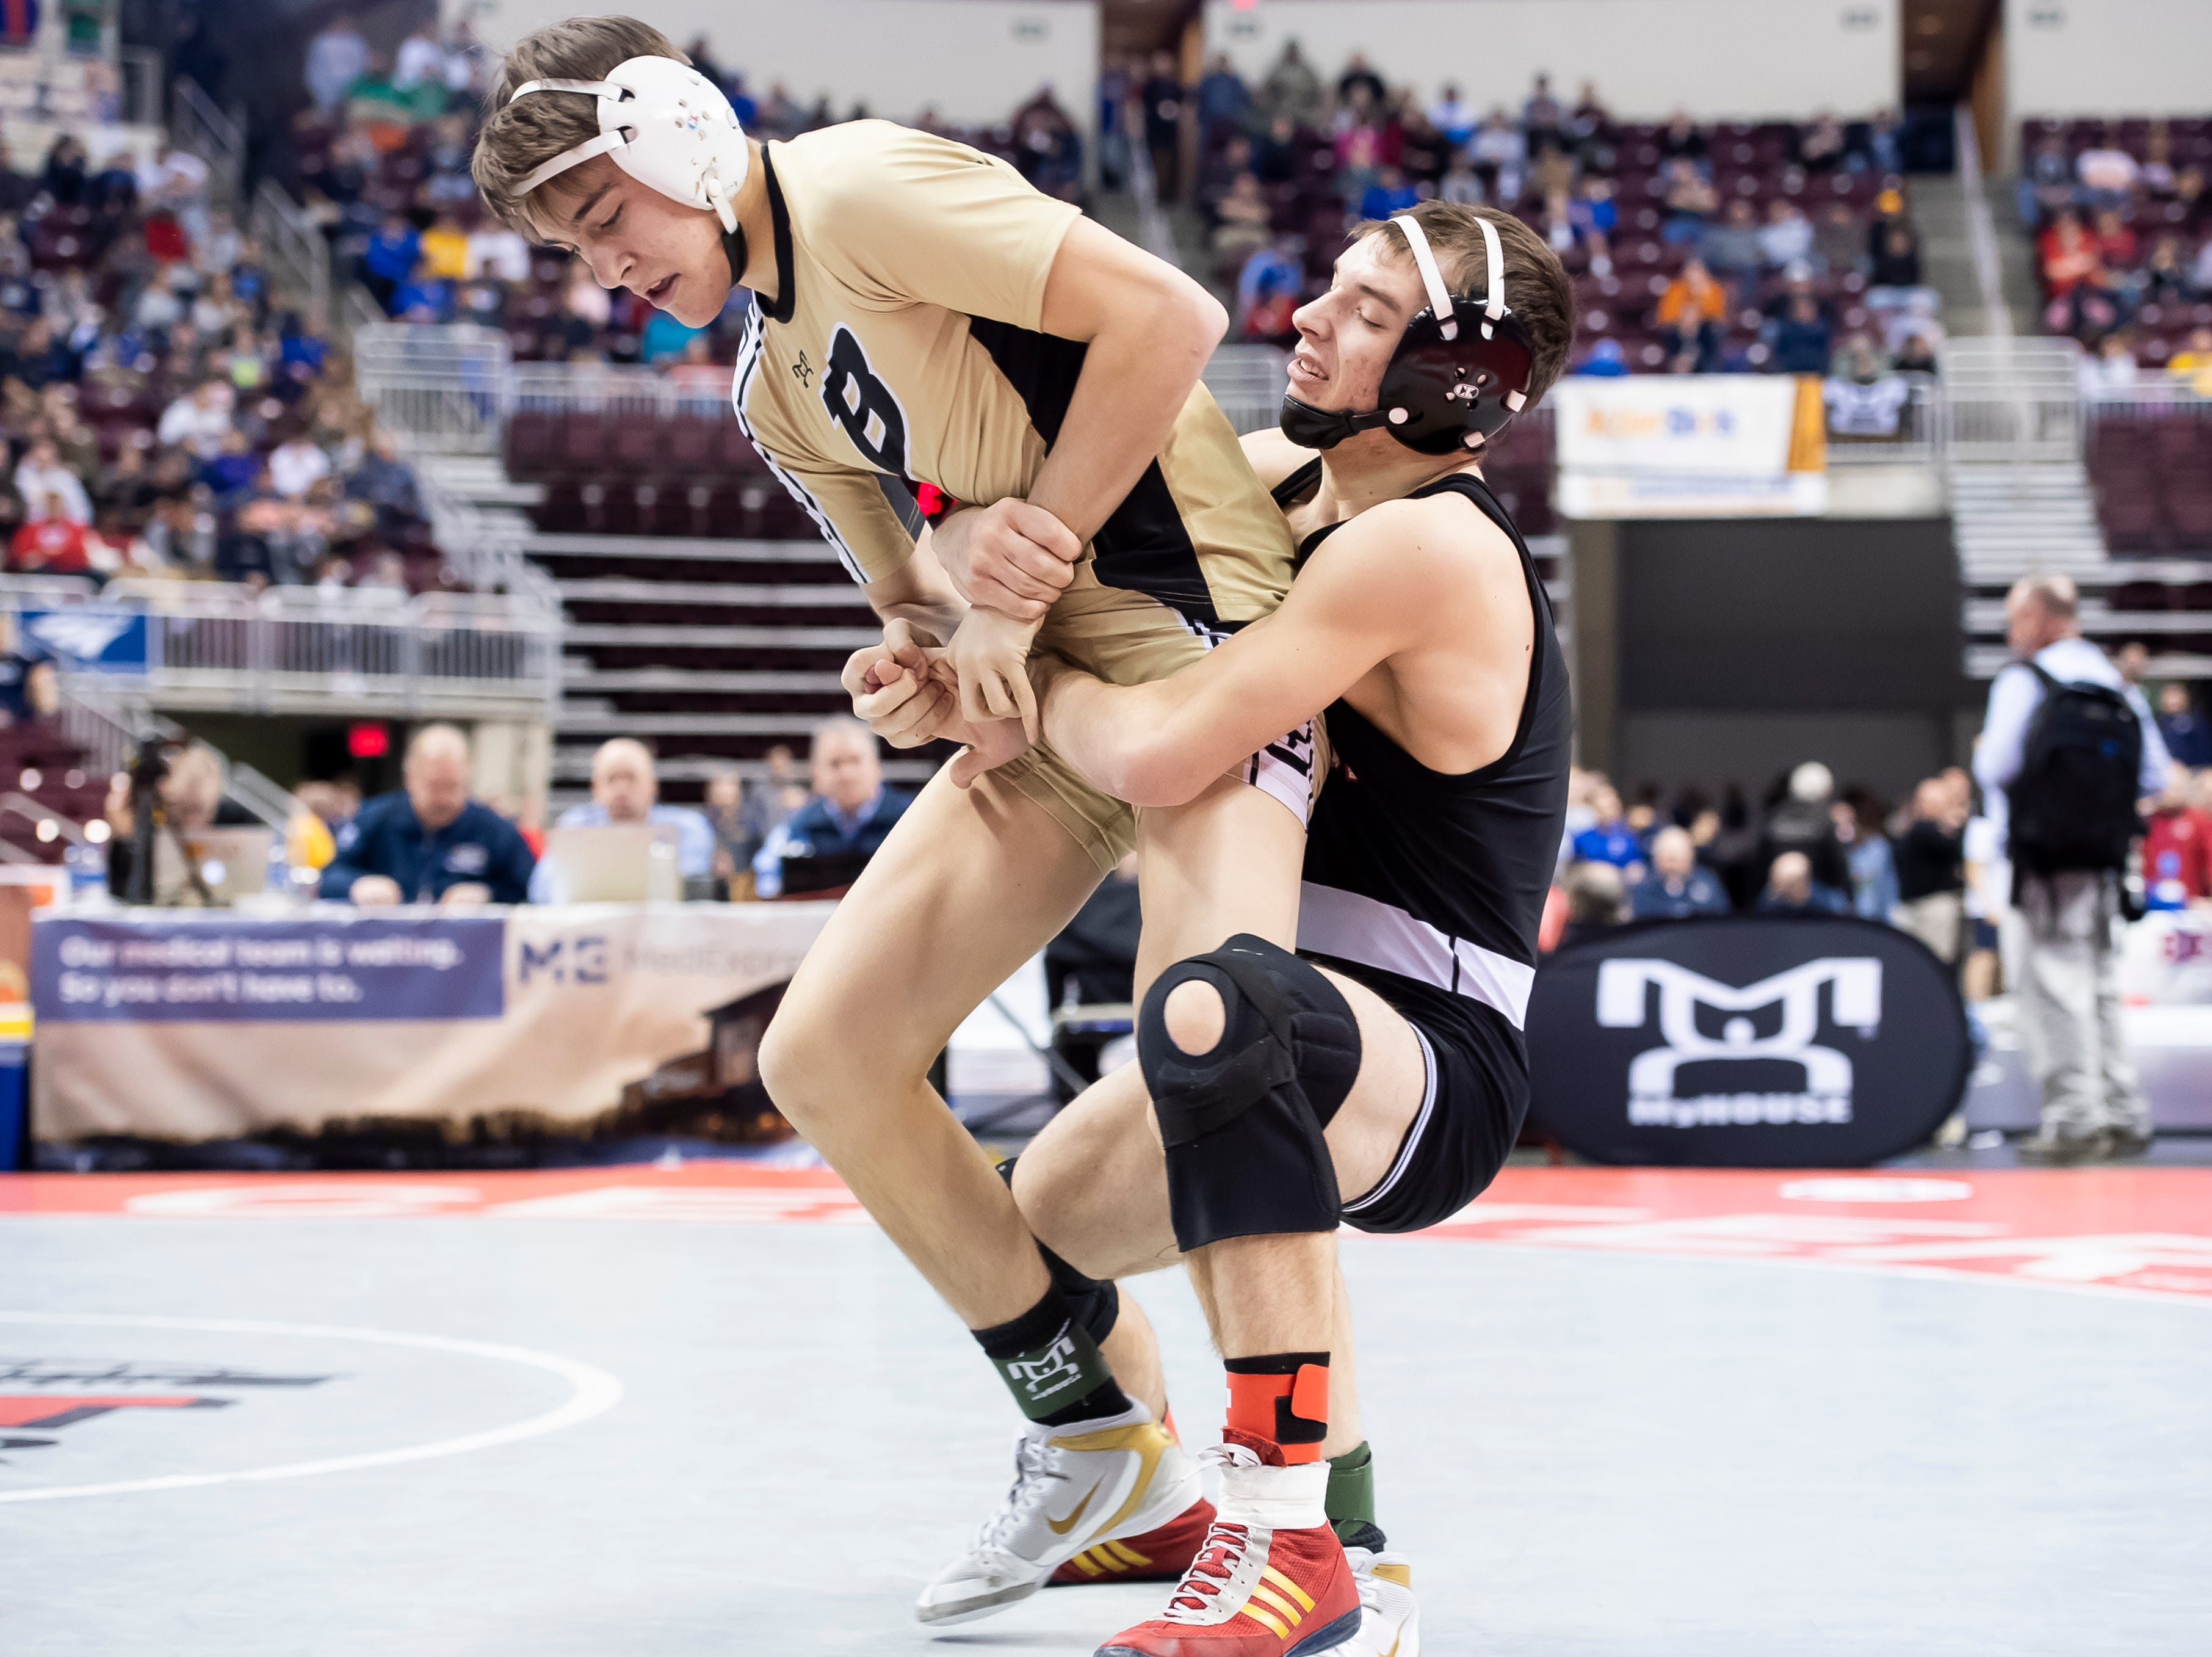 Biglerville's Josh Tuckey, left, tries to get away from Brockway's Anthony Glasl during a 126-pound second round consolation bout at the Giant Center in Hershey Friday, March 8, 2019. Glasl won by a 3-1 decision.